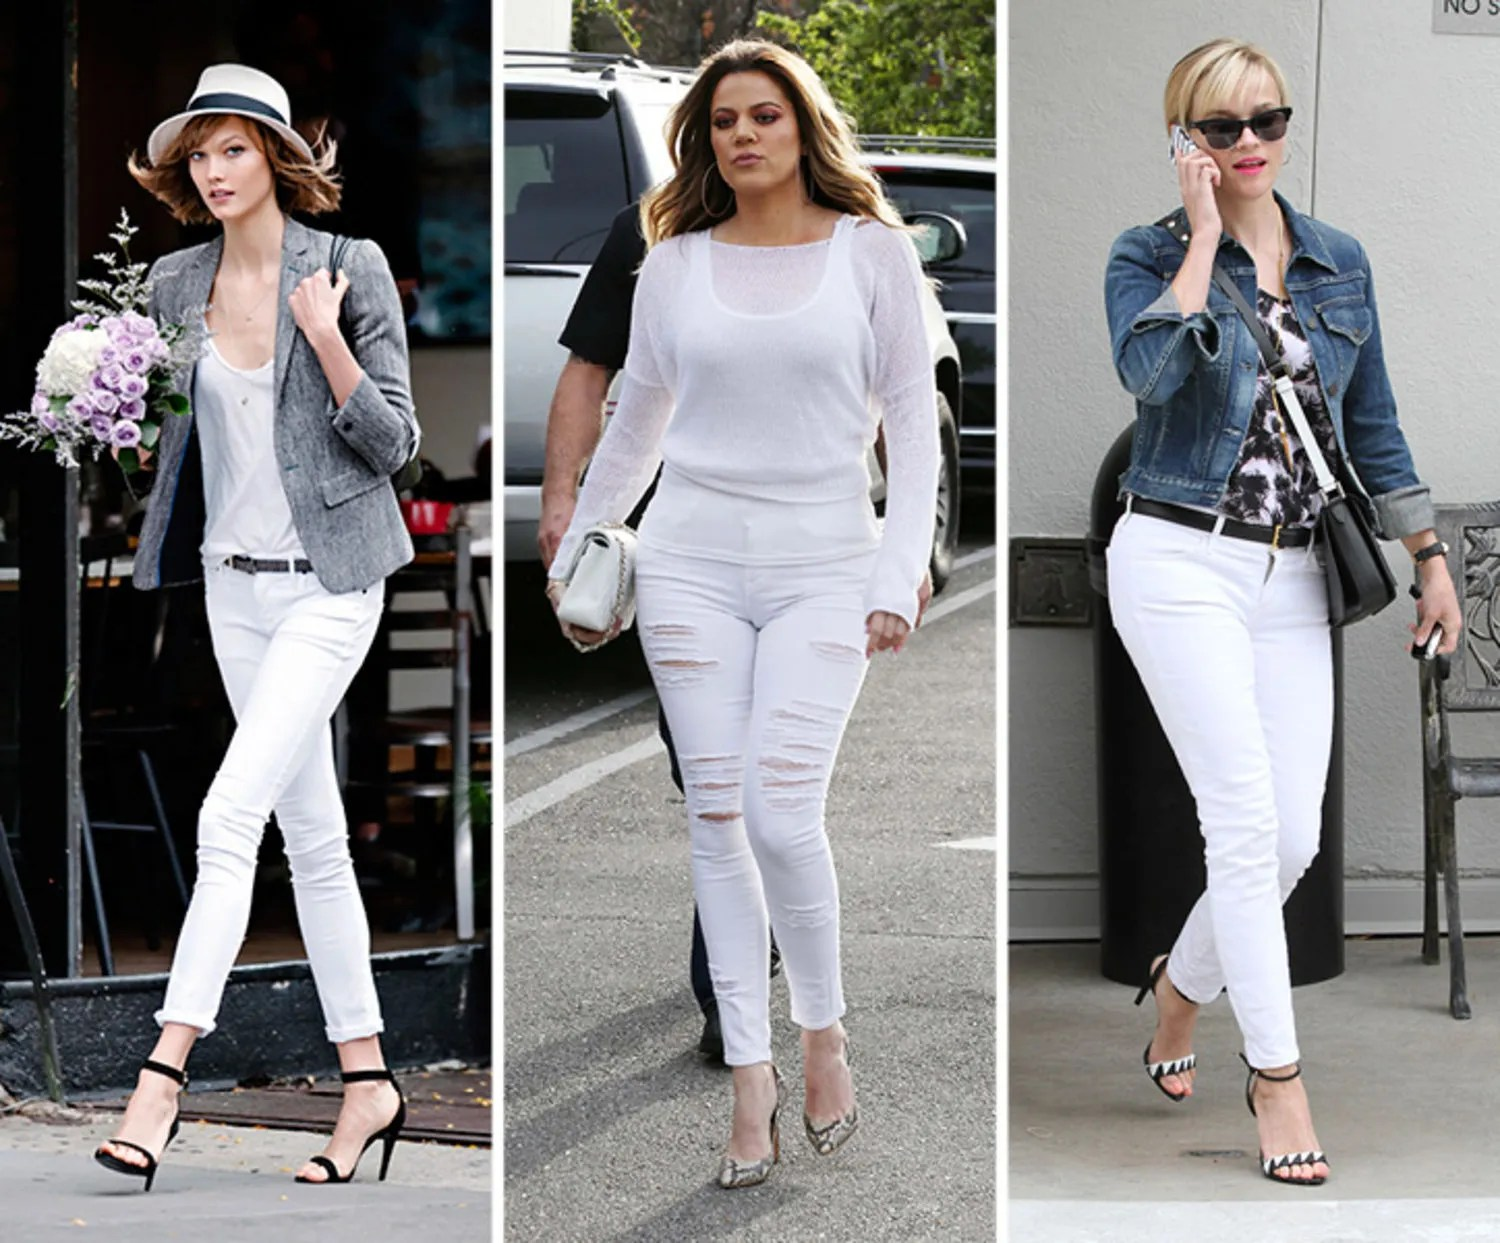 Can I Wear White Jeans In The Fall And Winter?